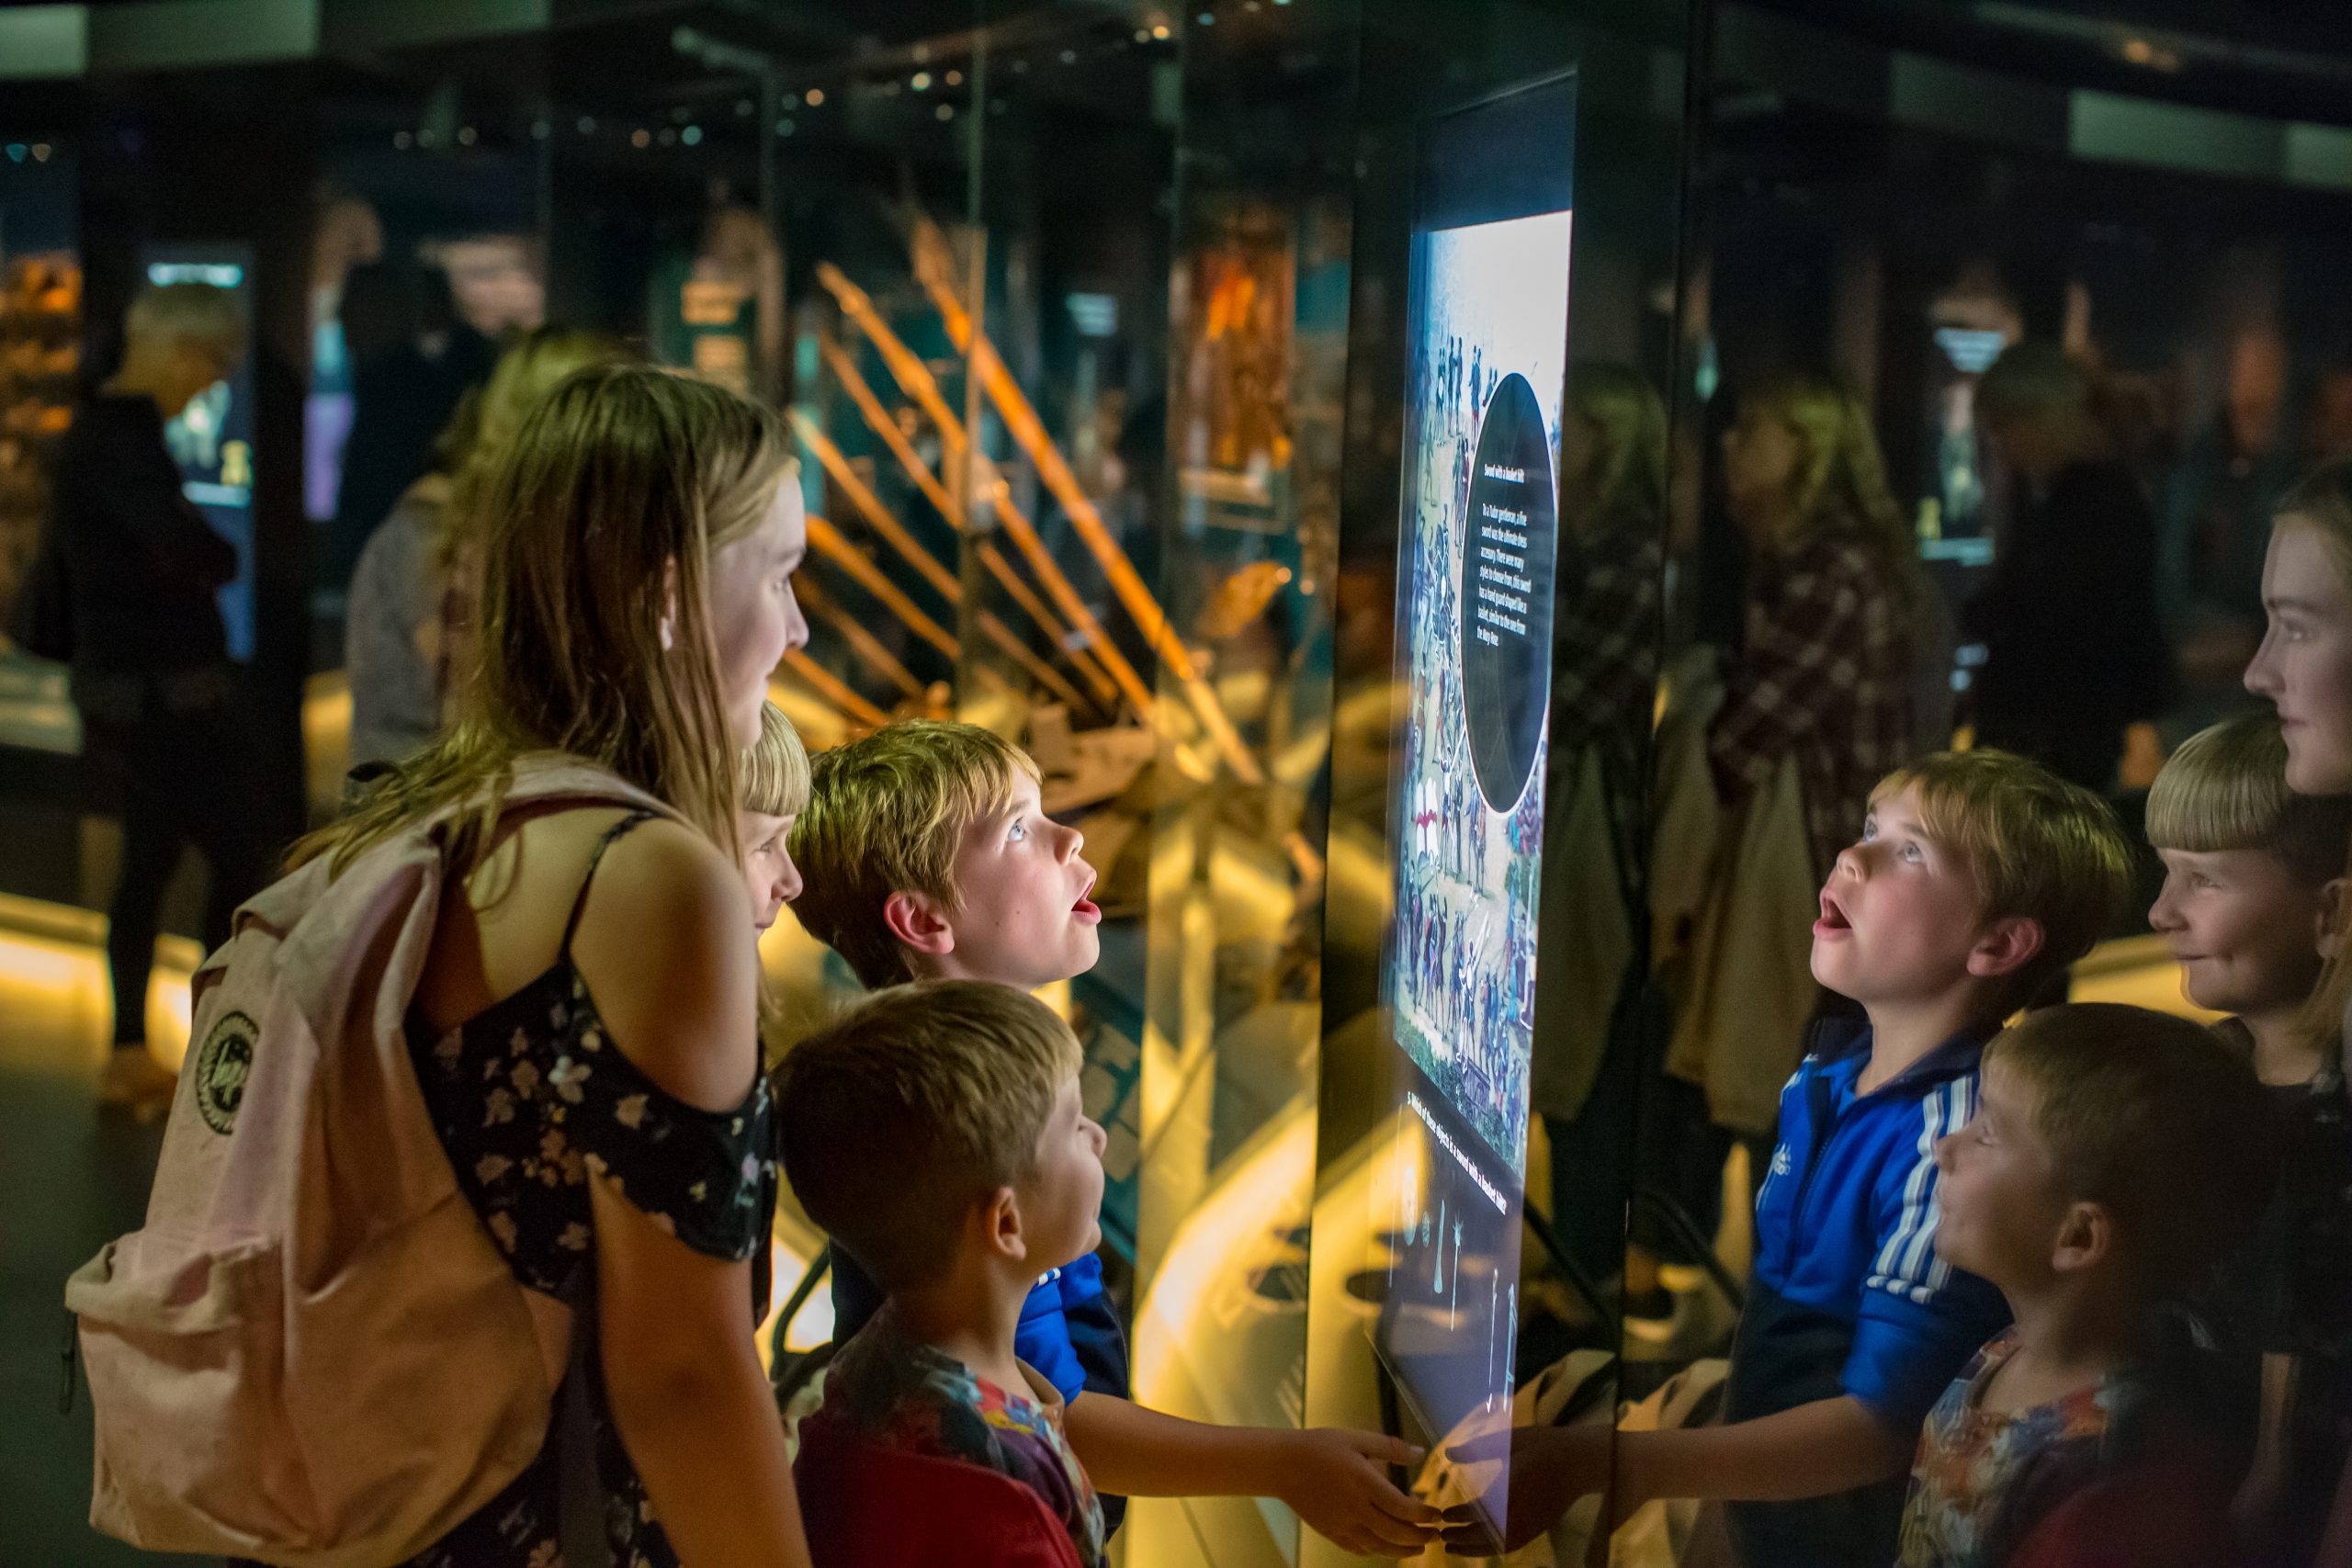 Visitors at the Mary Rose Museum, which has received funding from ACE's Culture Recovery Fund